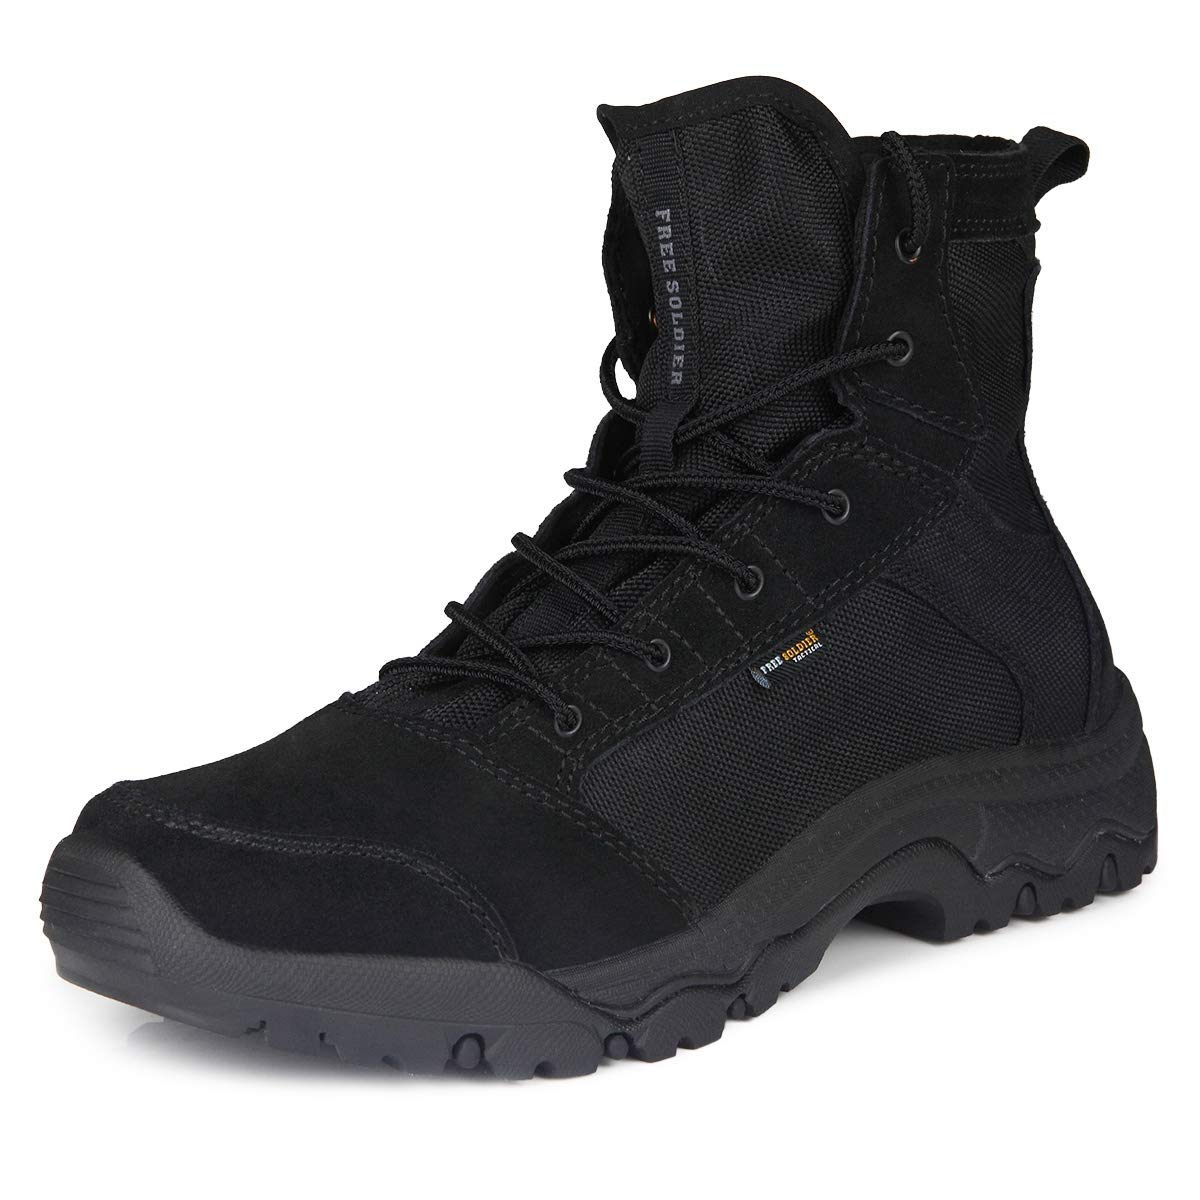 FREE SOLDIER Men's Work Boots 6 inch Lightweight Breathable Military Tactical Desert Boots for